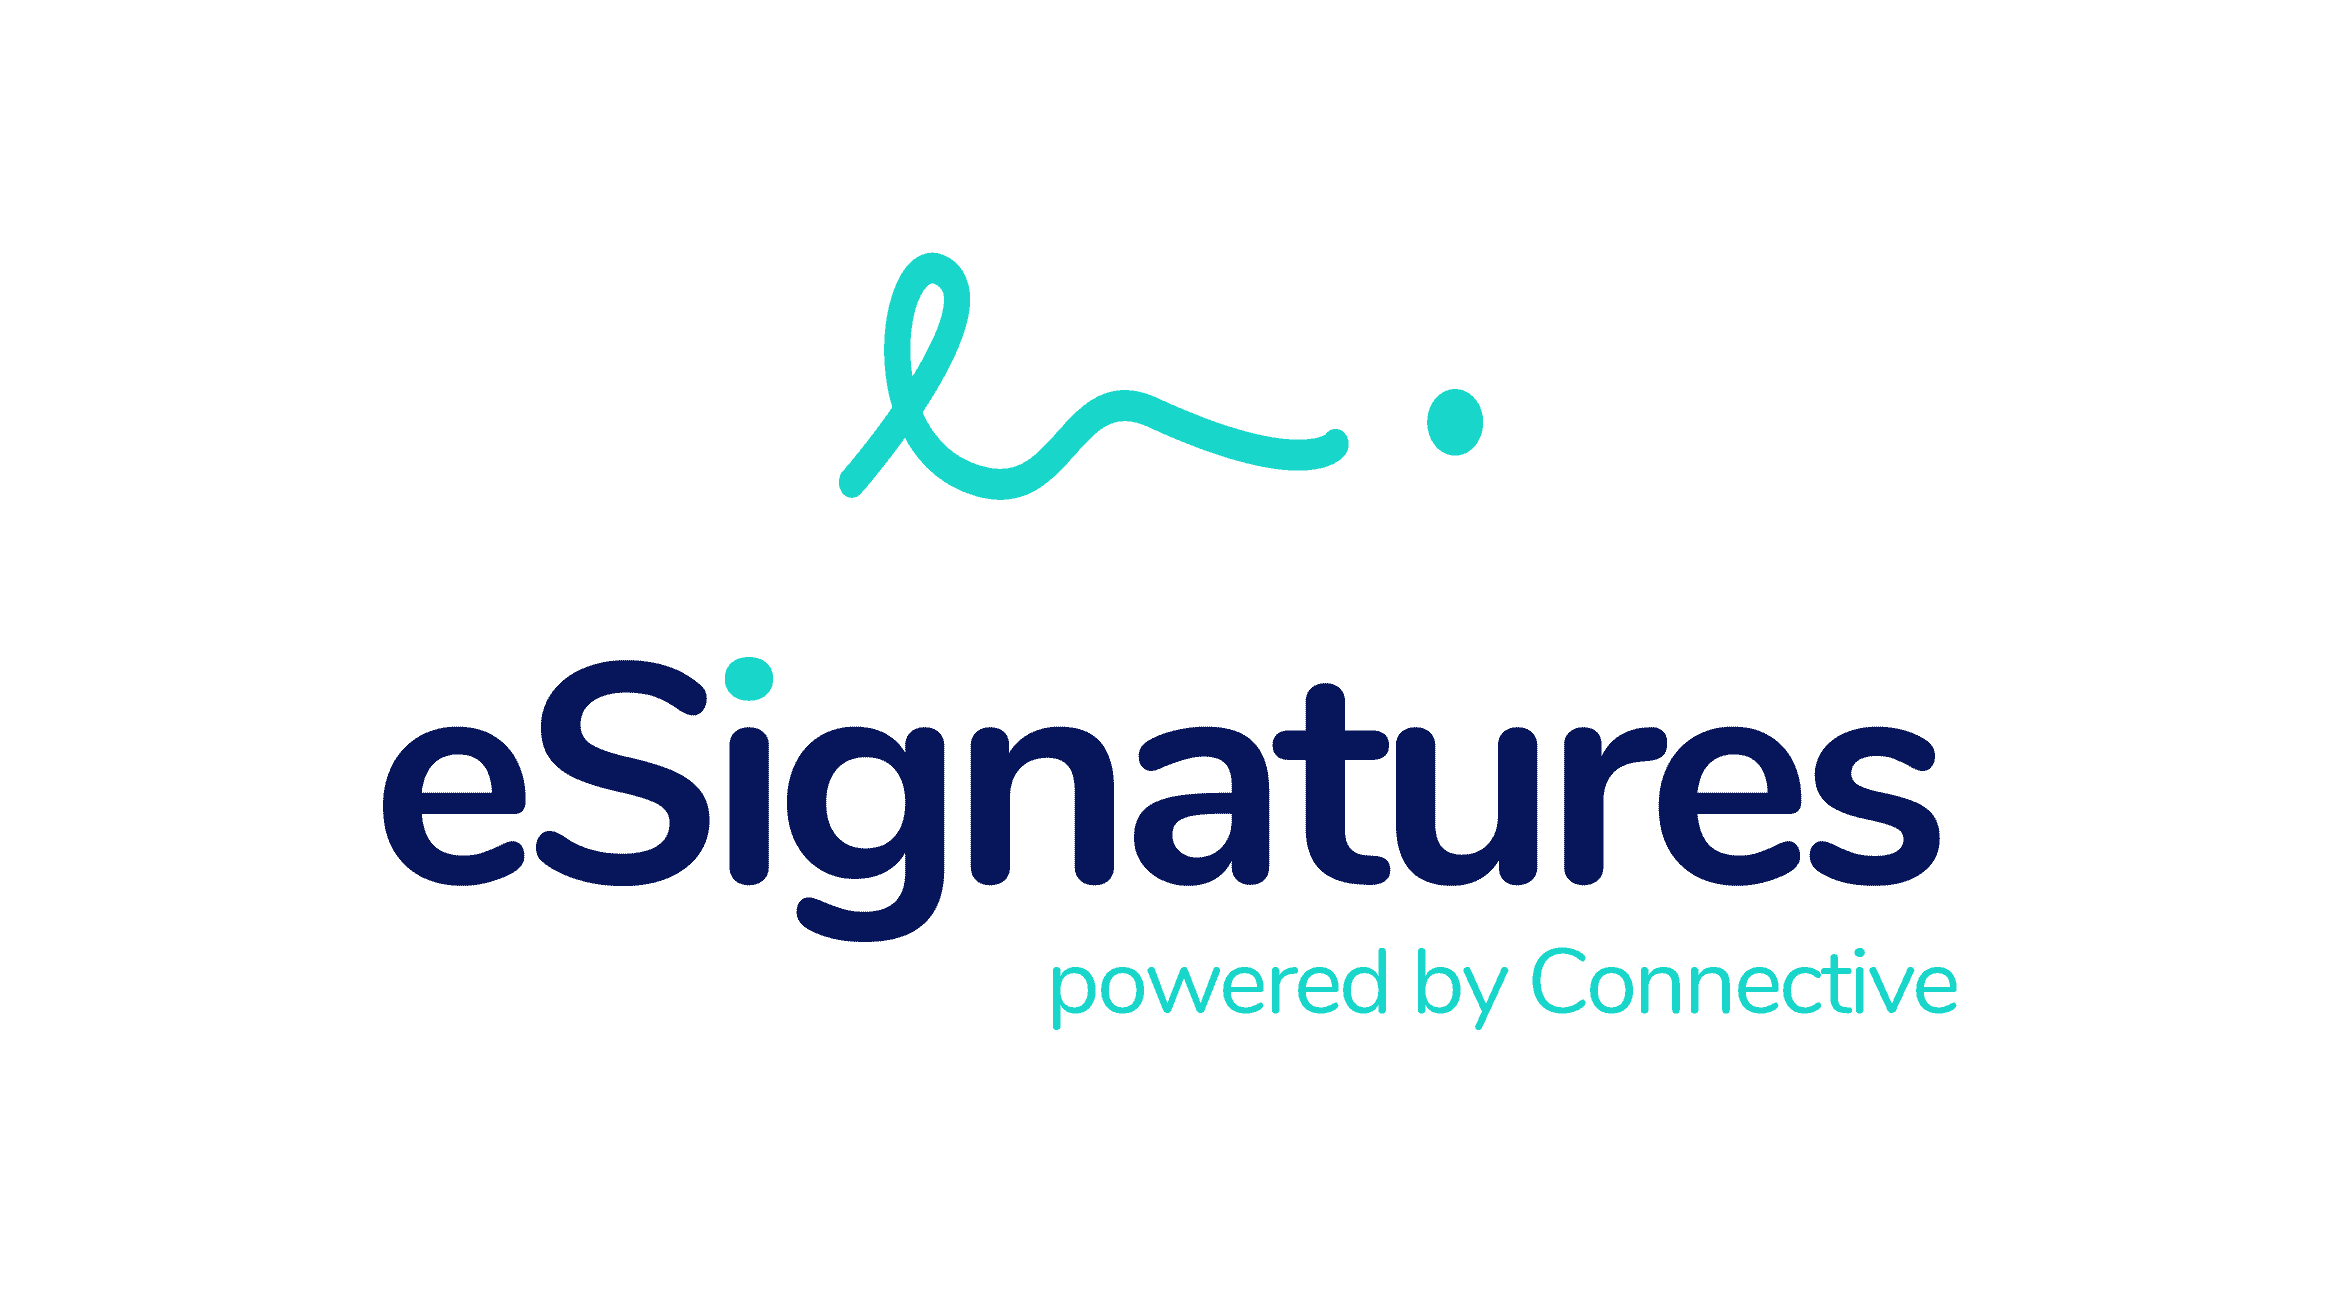 ESignatures powered by Connective